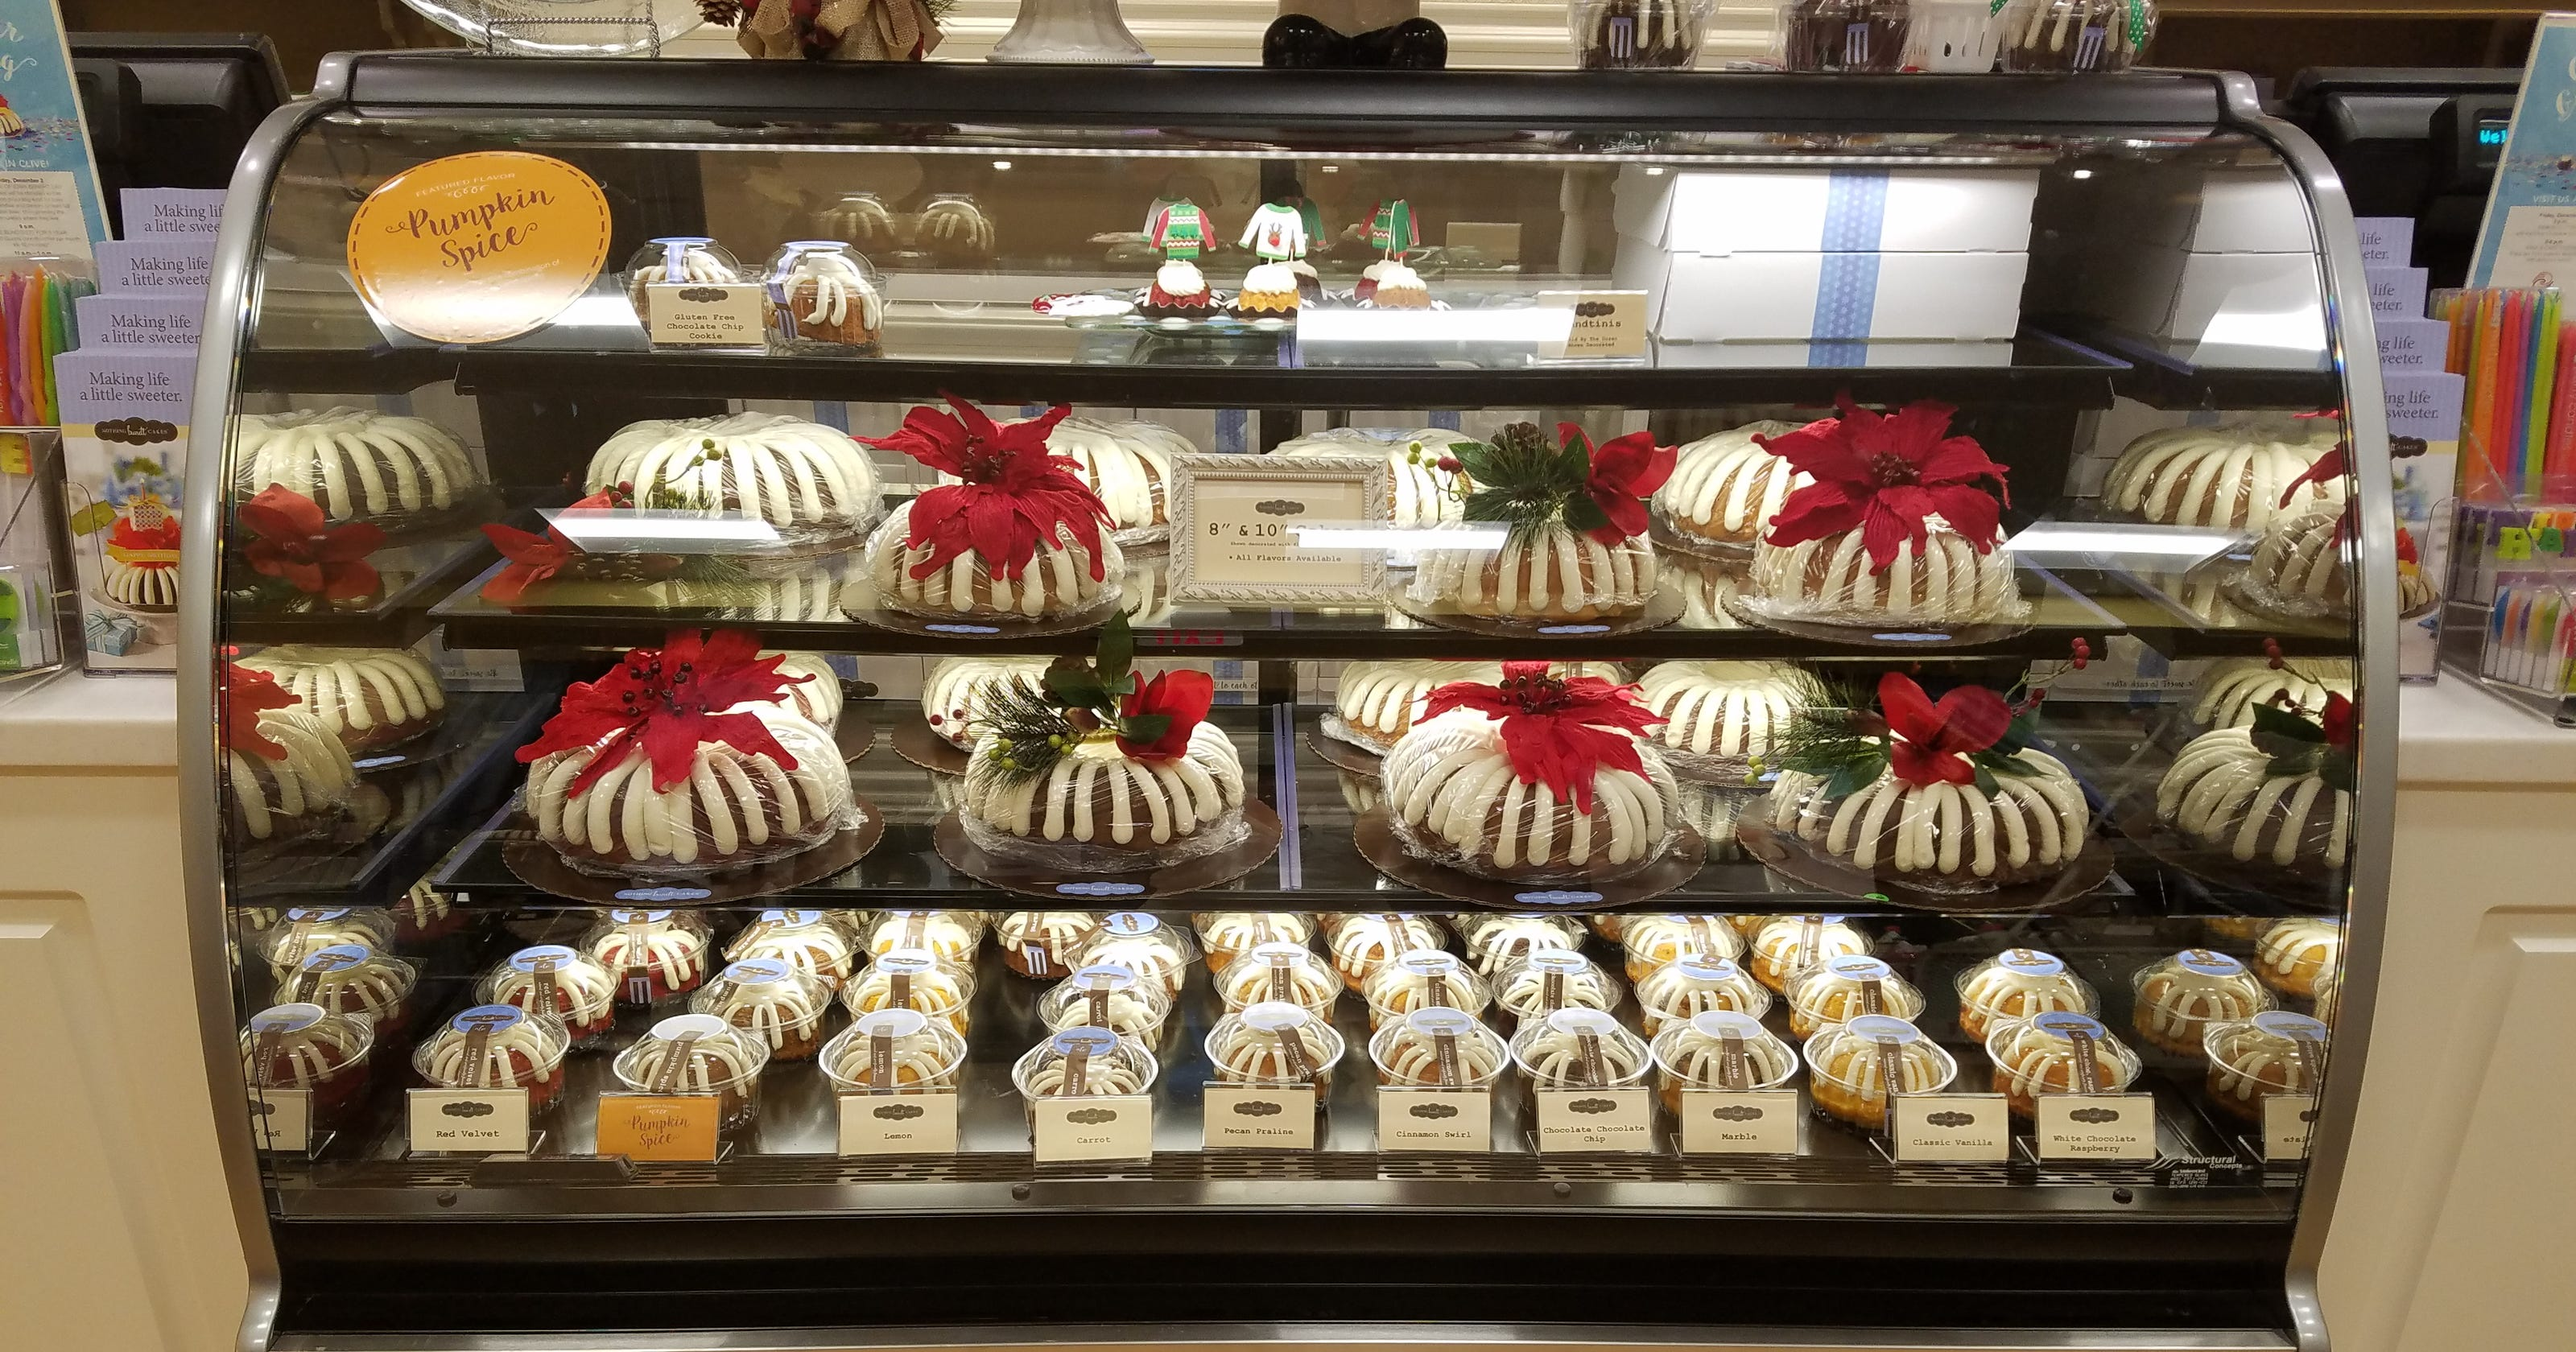 Bundt Bakery Featuring Big And Bite Sized Cakes Opens In Clive